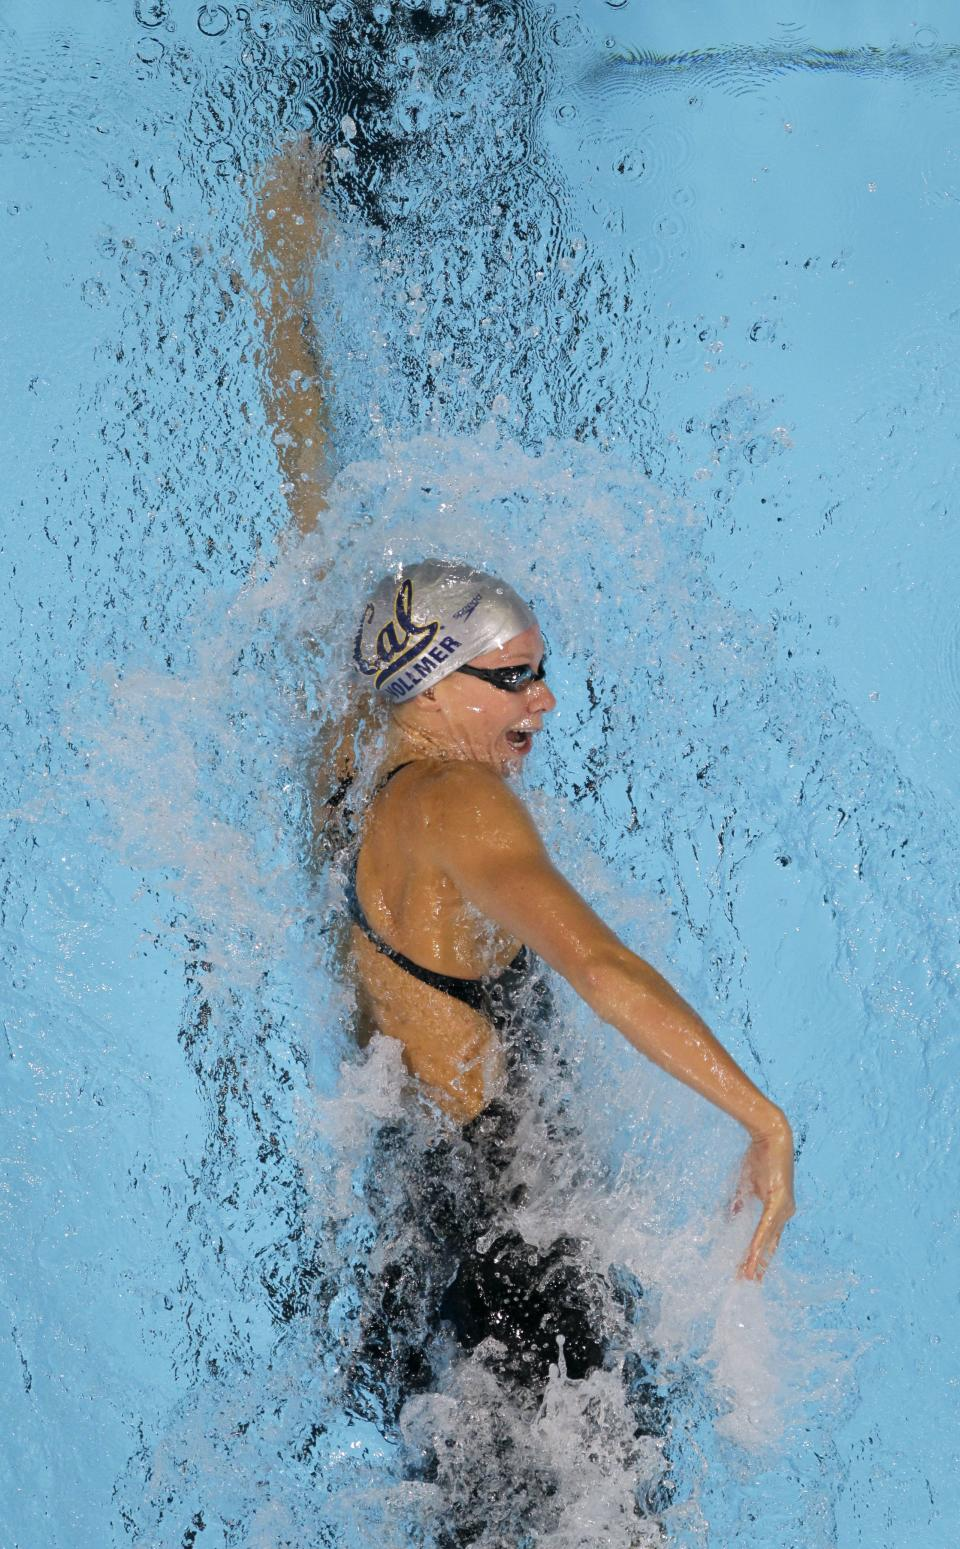 Dana Vollmer swims in the women's 200-meter freestyle preliminaries at the U.S. Olympic swimming trials, Wednesday, June 27, 2012, in Omaha, Neb. (AP Photo/Nati Harnik)